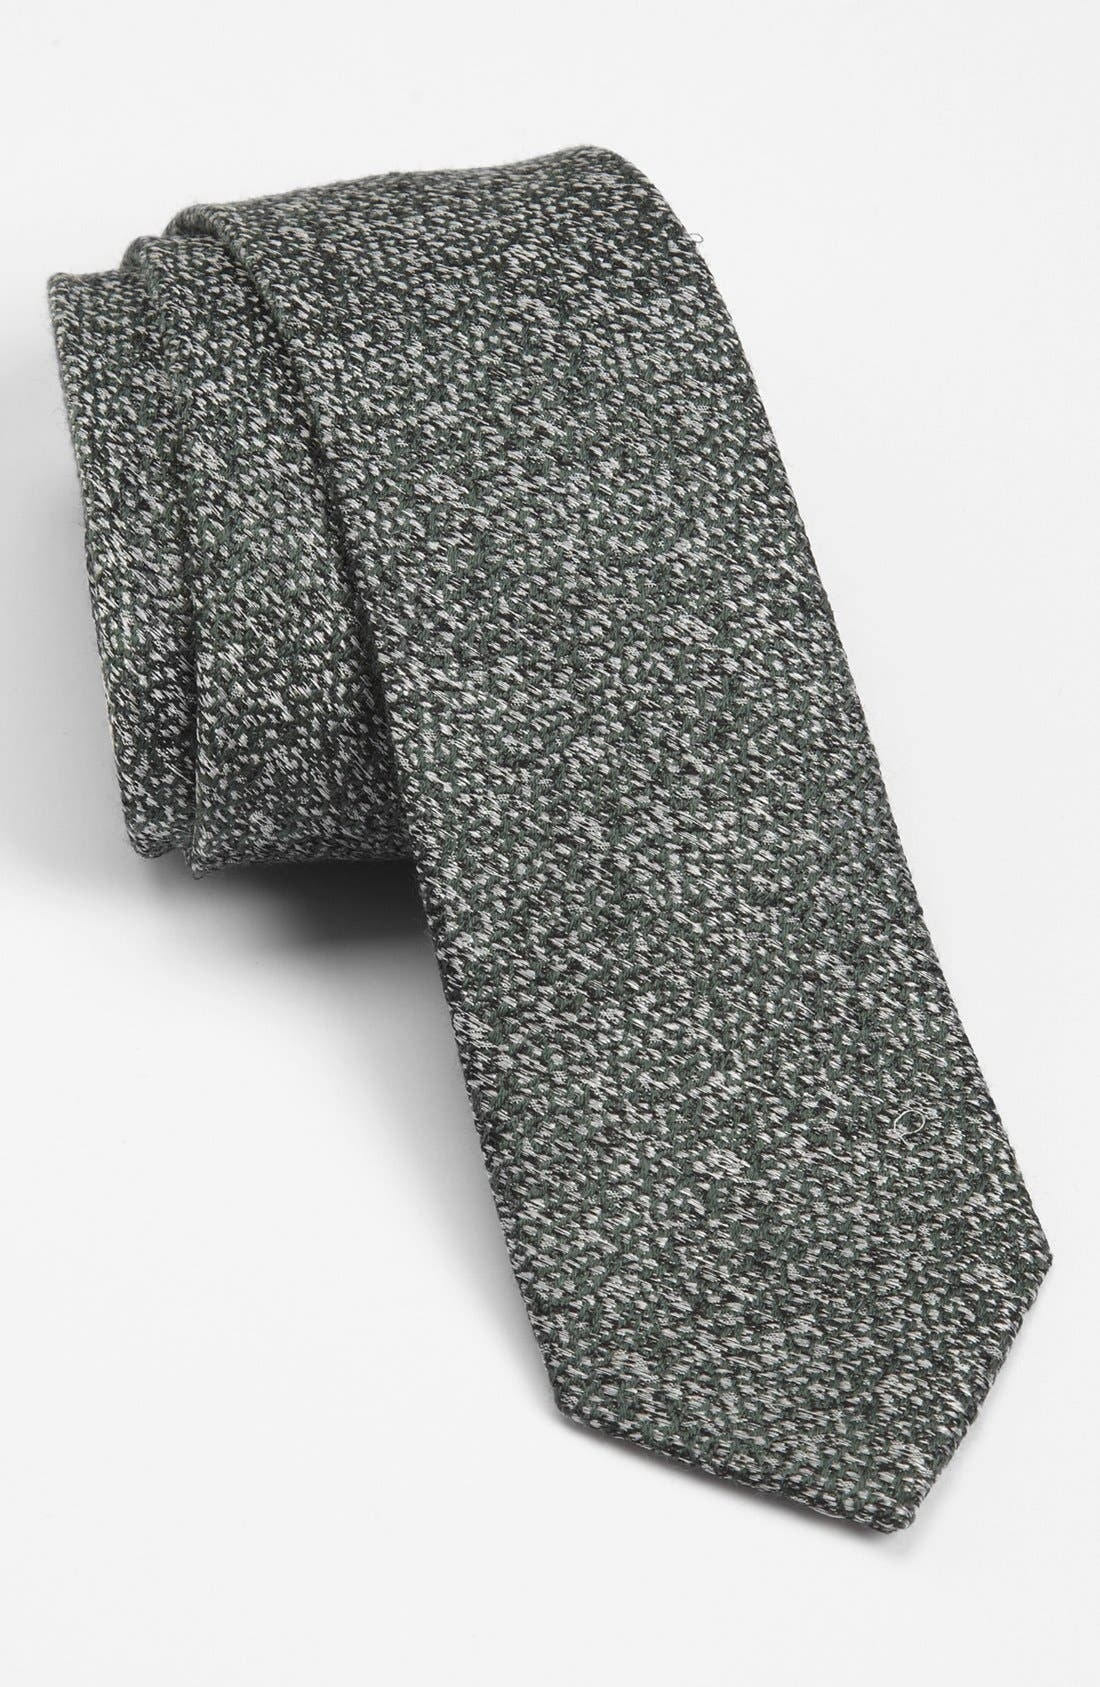 Alternate Image 1 Selected - Topman Woven Jacquard Tie